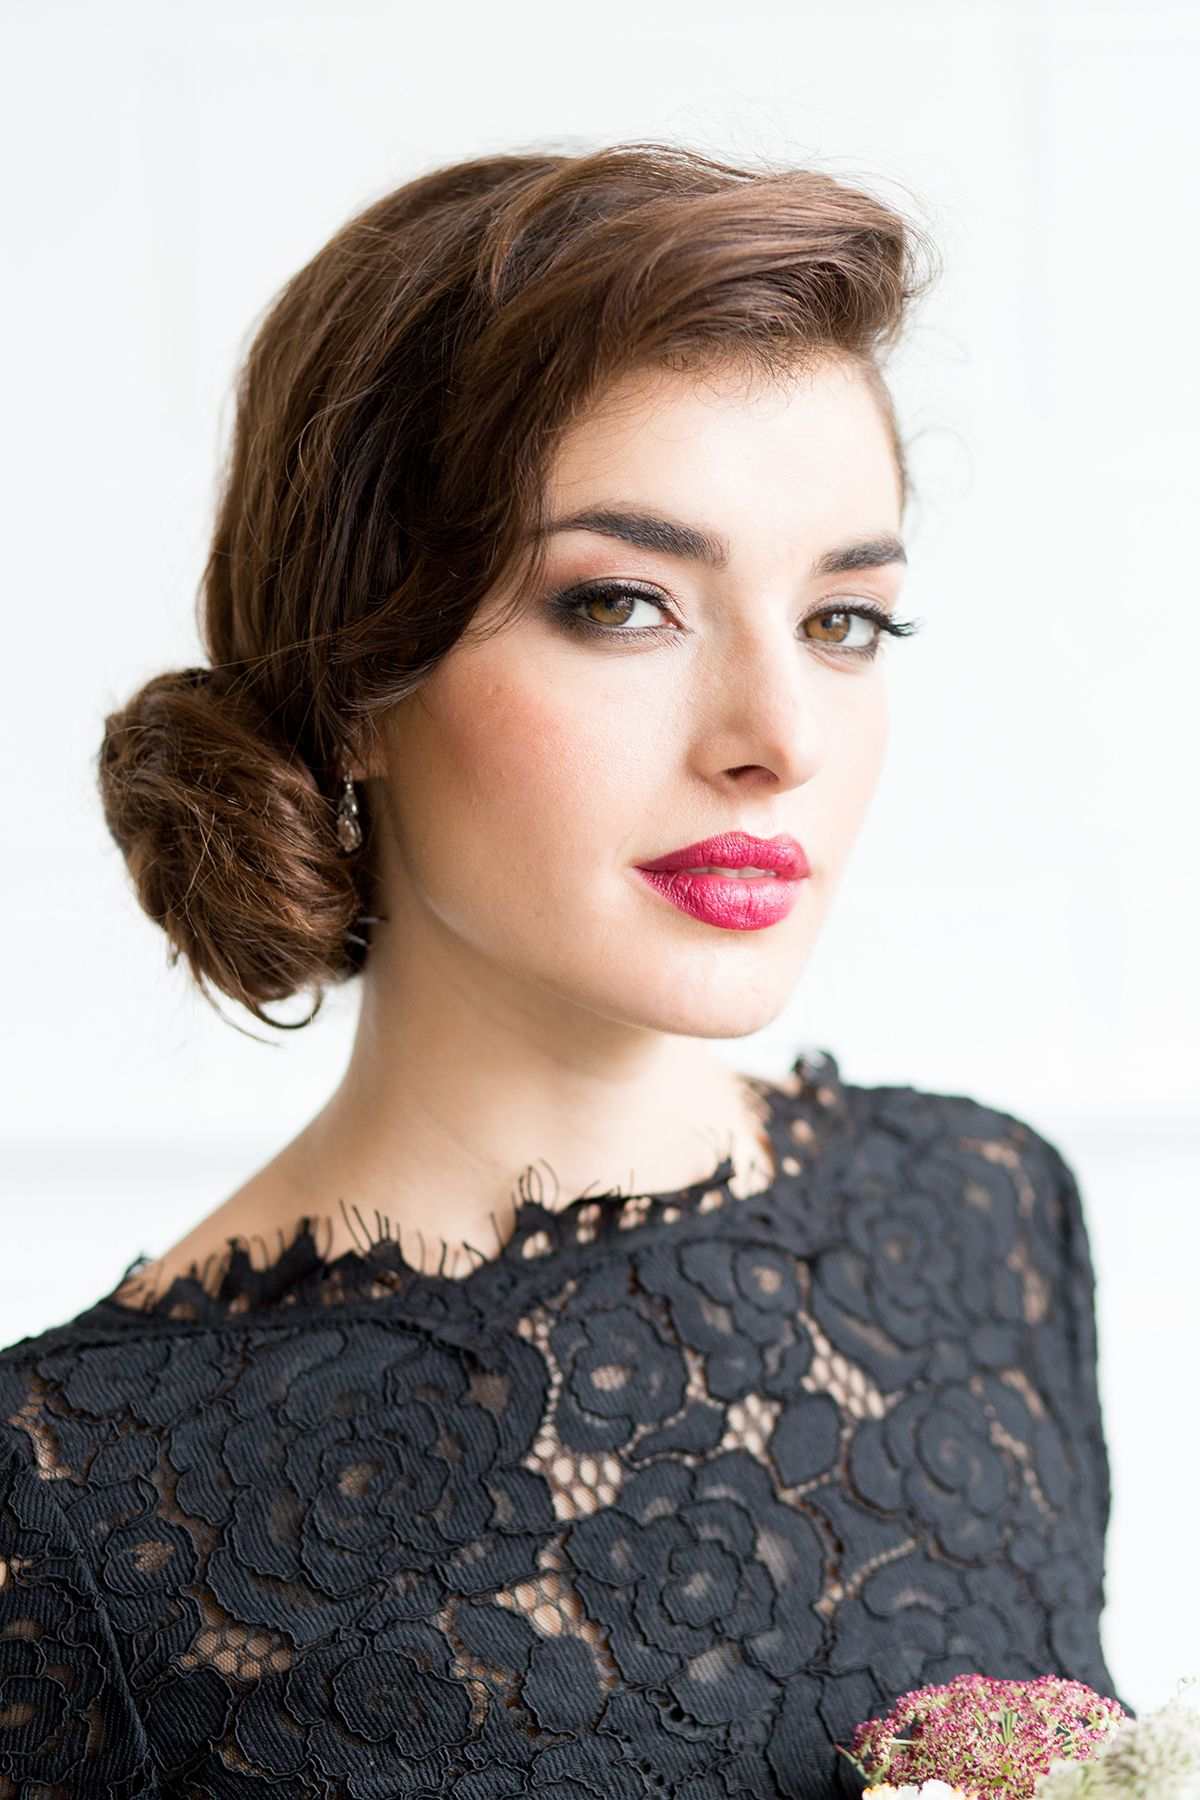 Red lipstick and black lace dress Vintage wedding hair